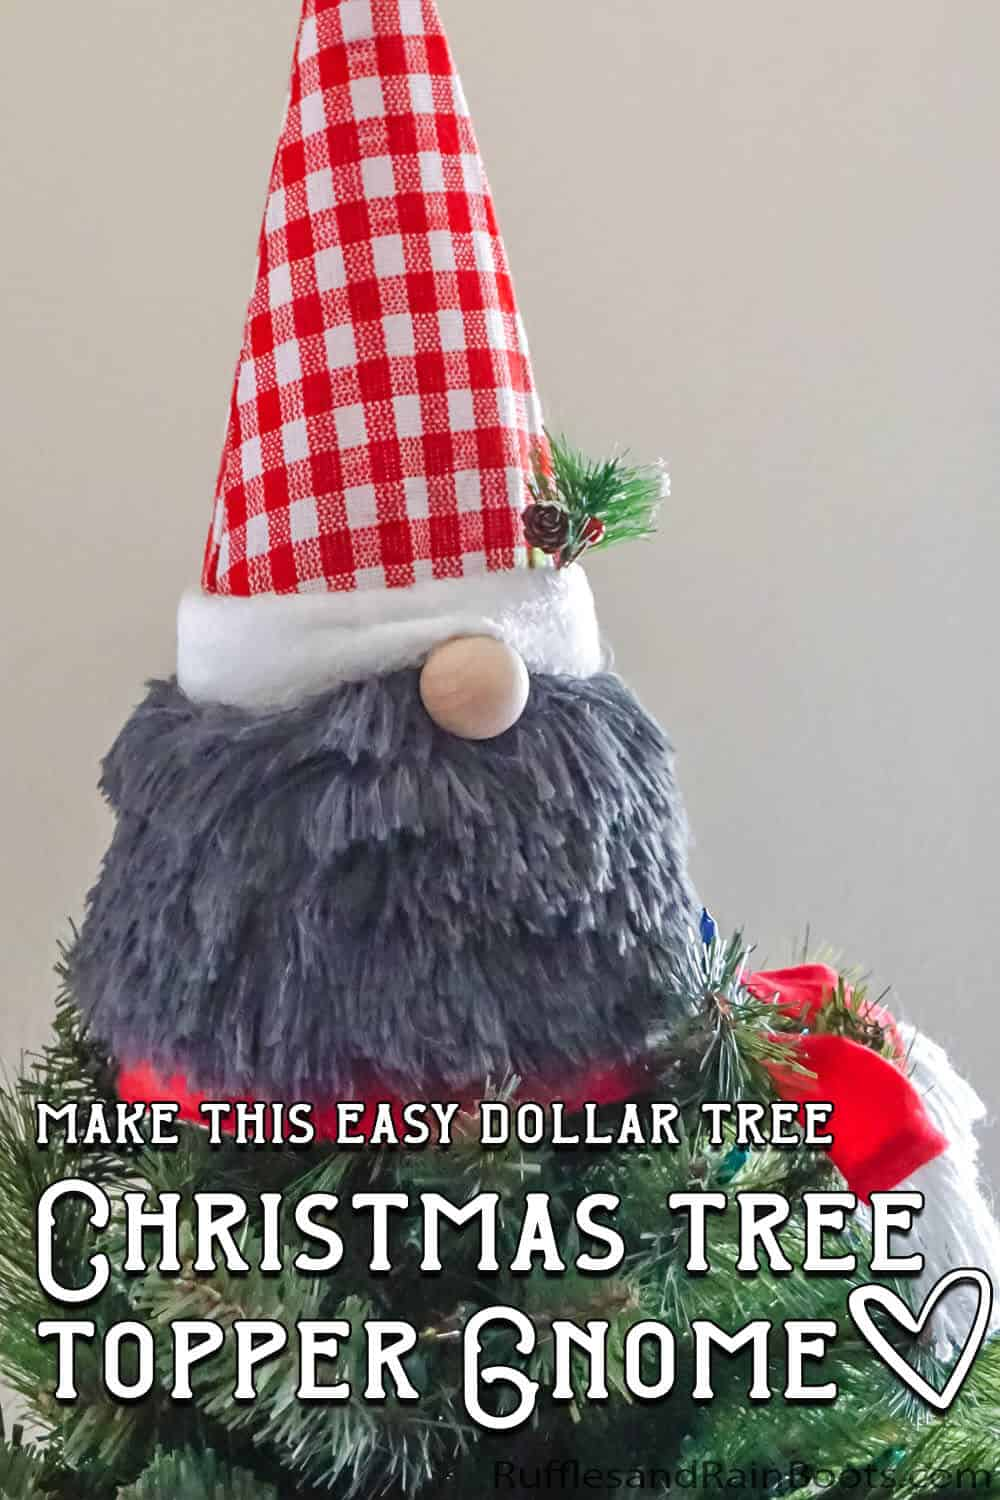 dollar tree christmas tree topper gnome craft with text which reads make this easy dollar tree christmas tree topper gnome